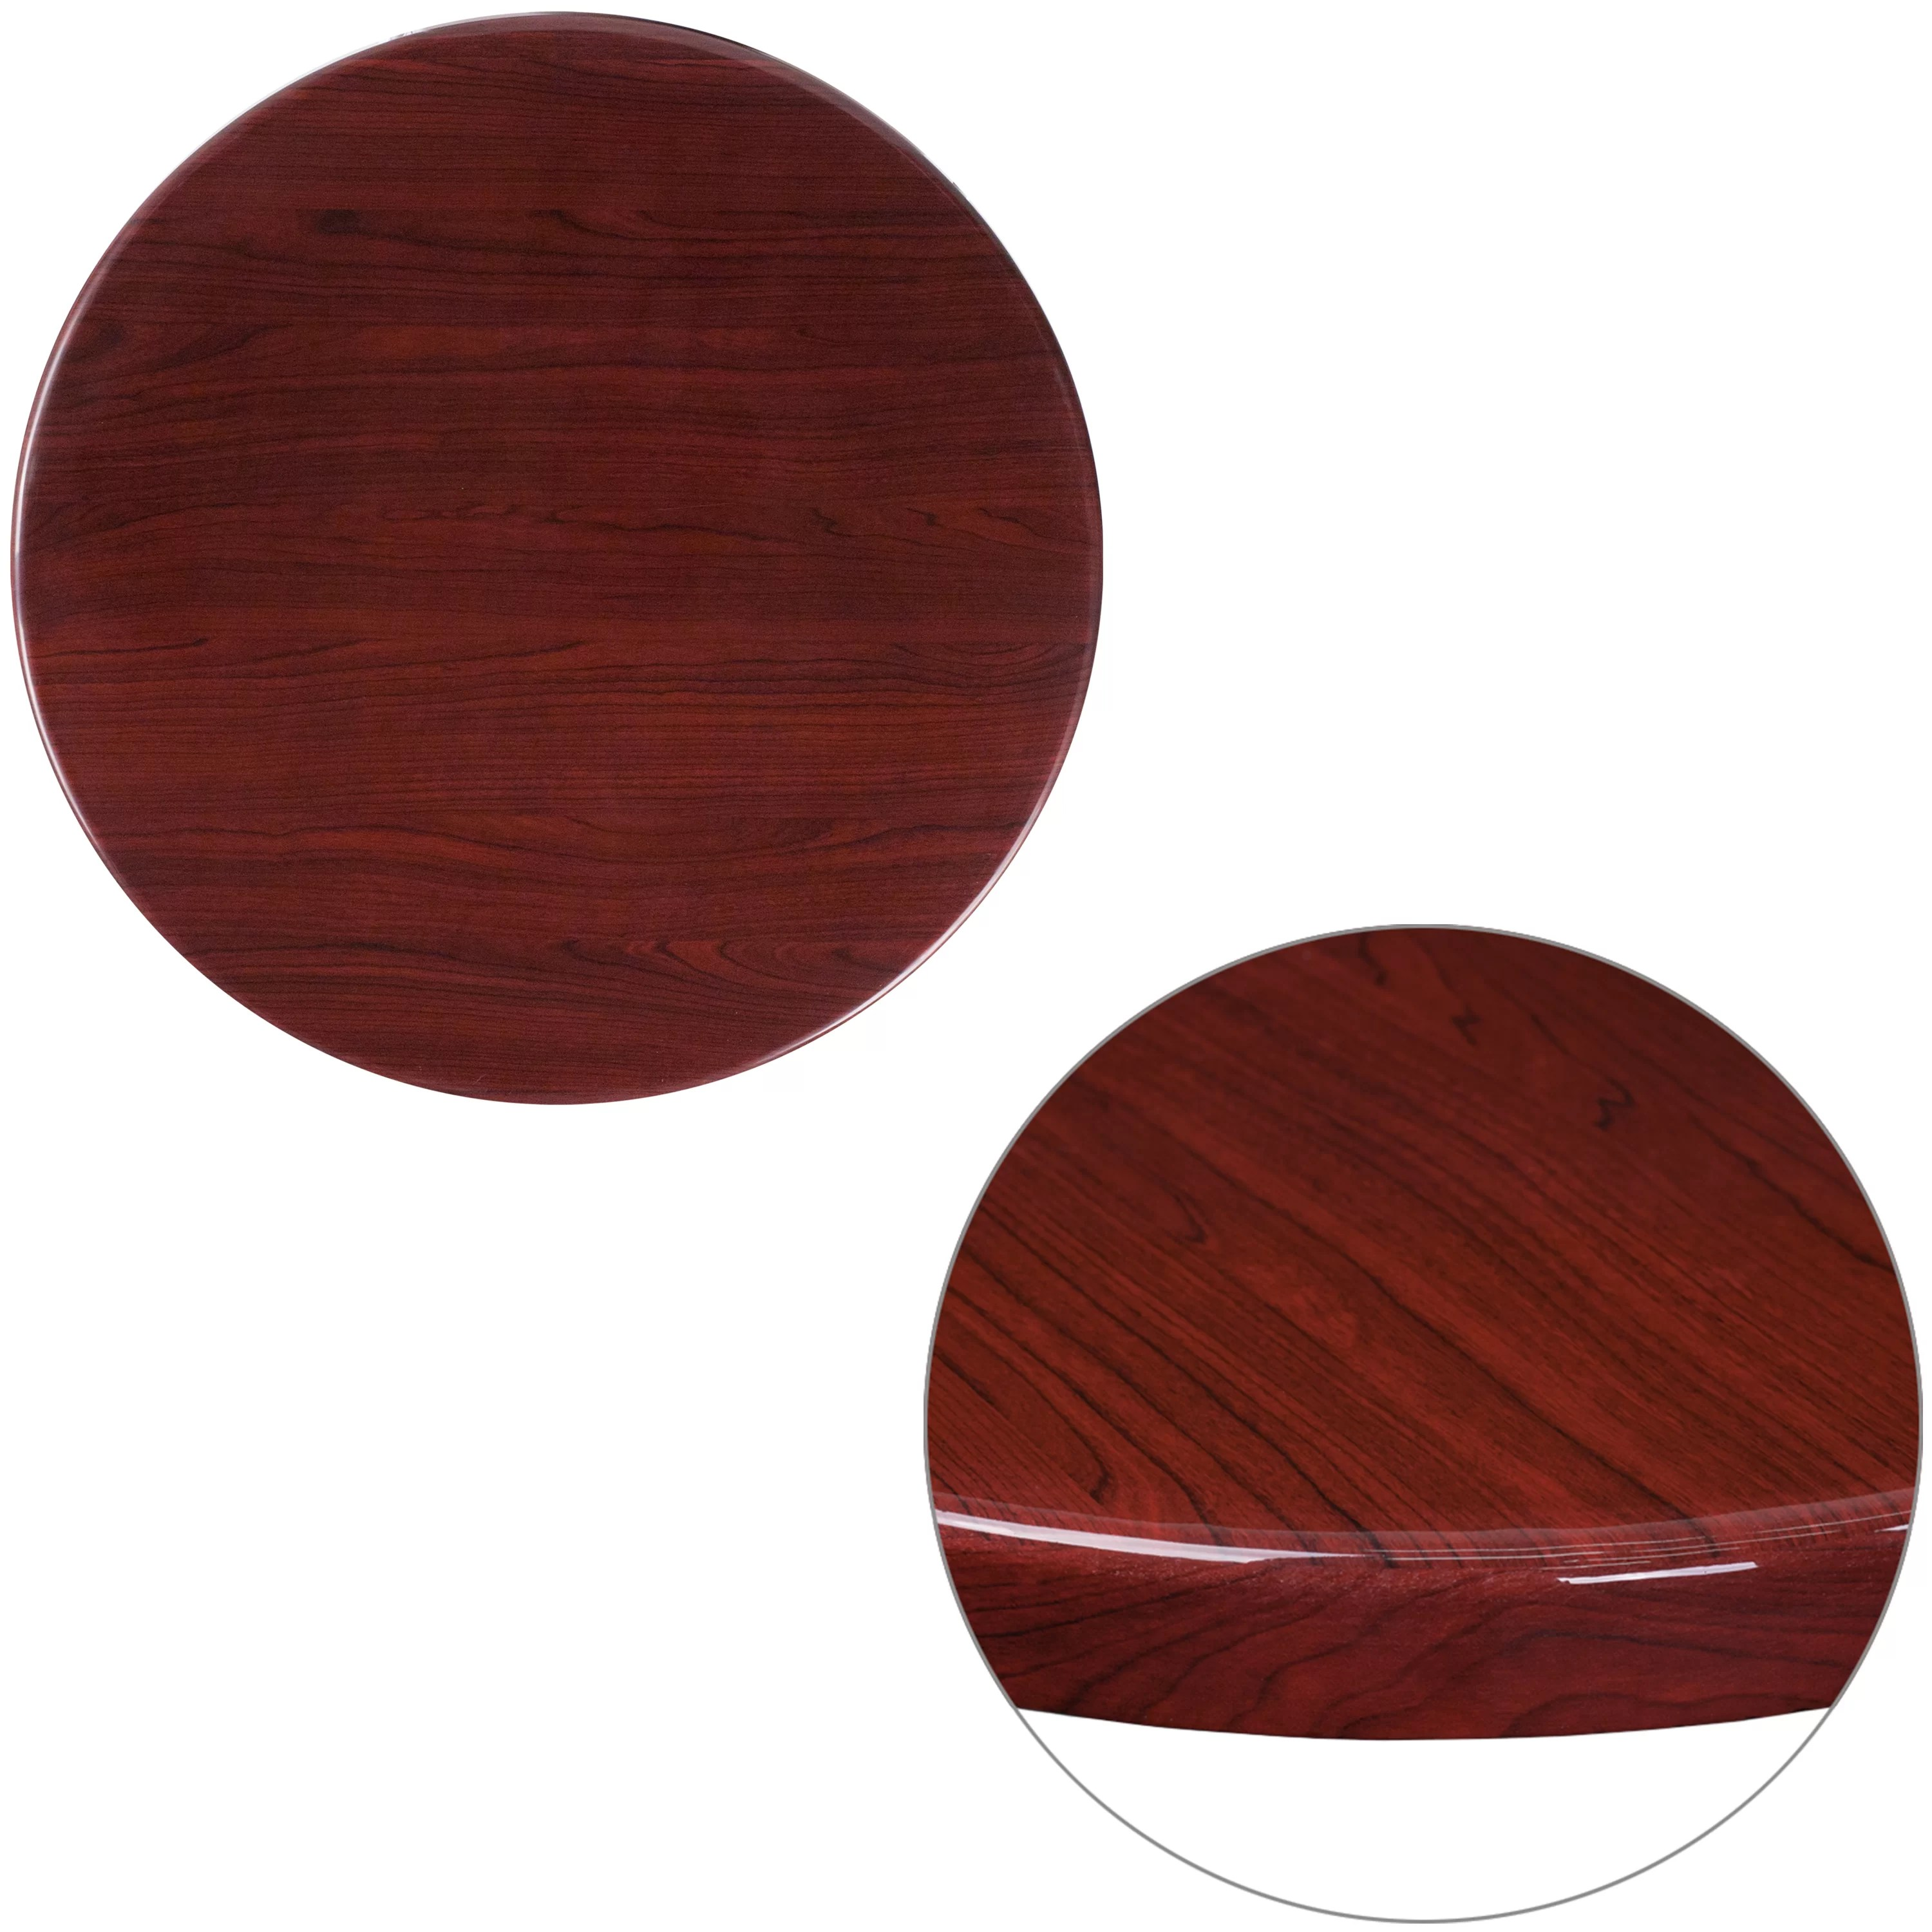 Round Table Tops Farren Round High Gloss Resin Table Top